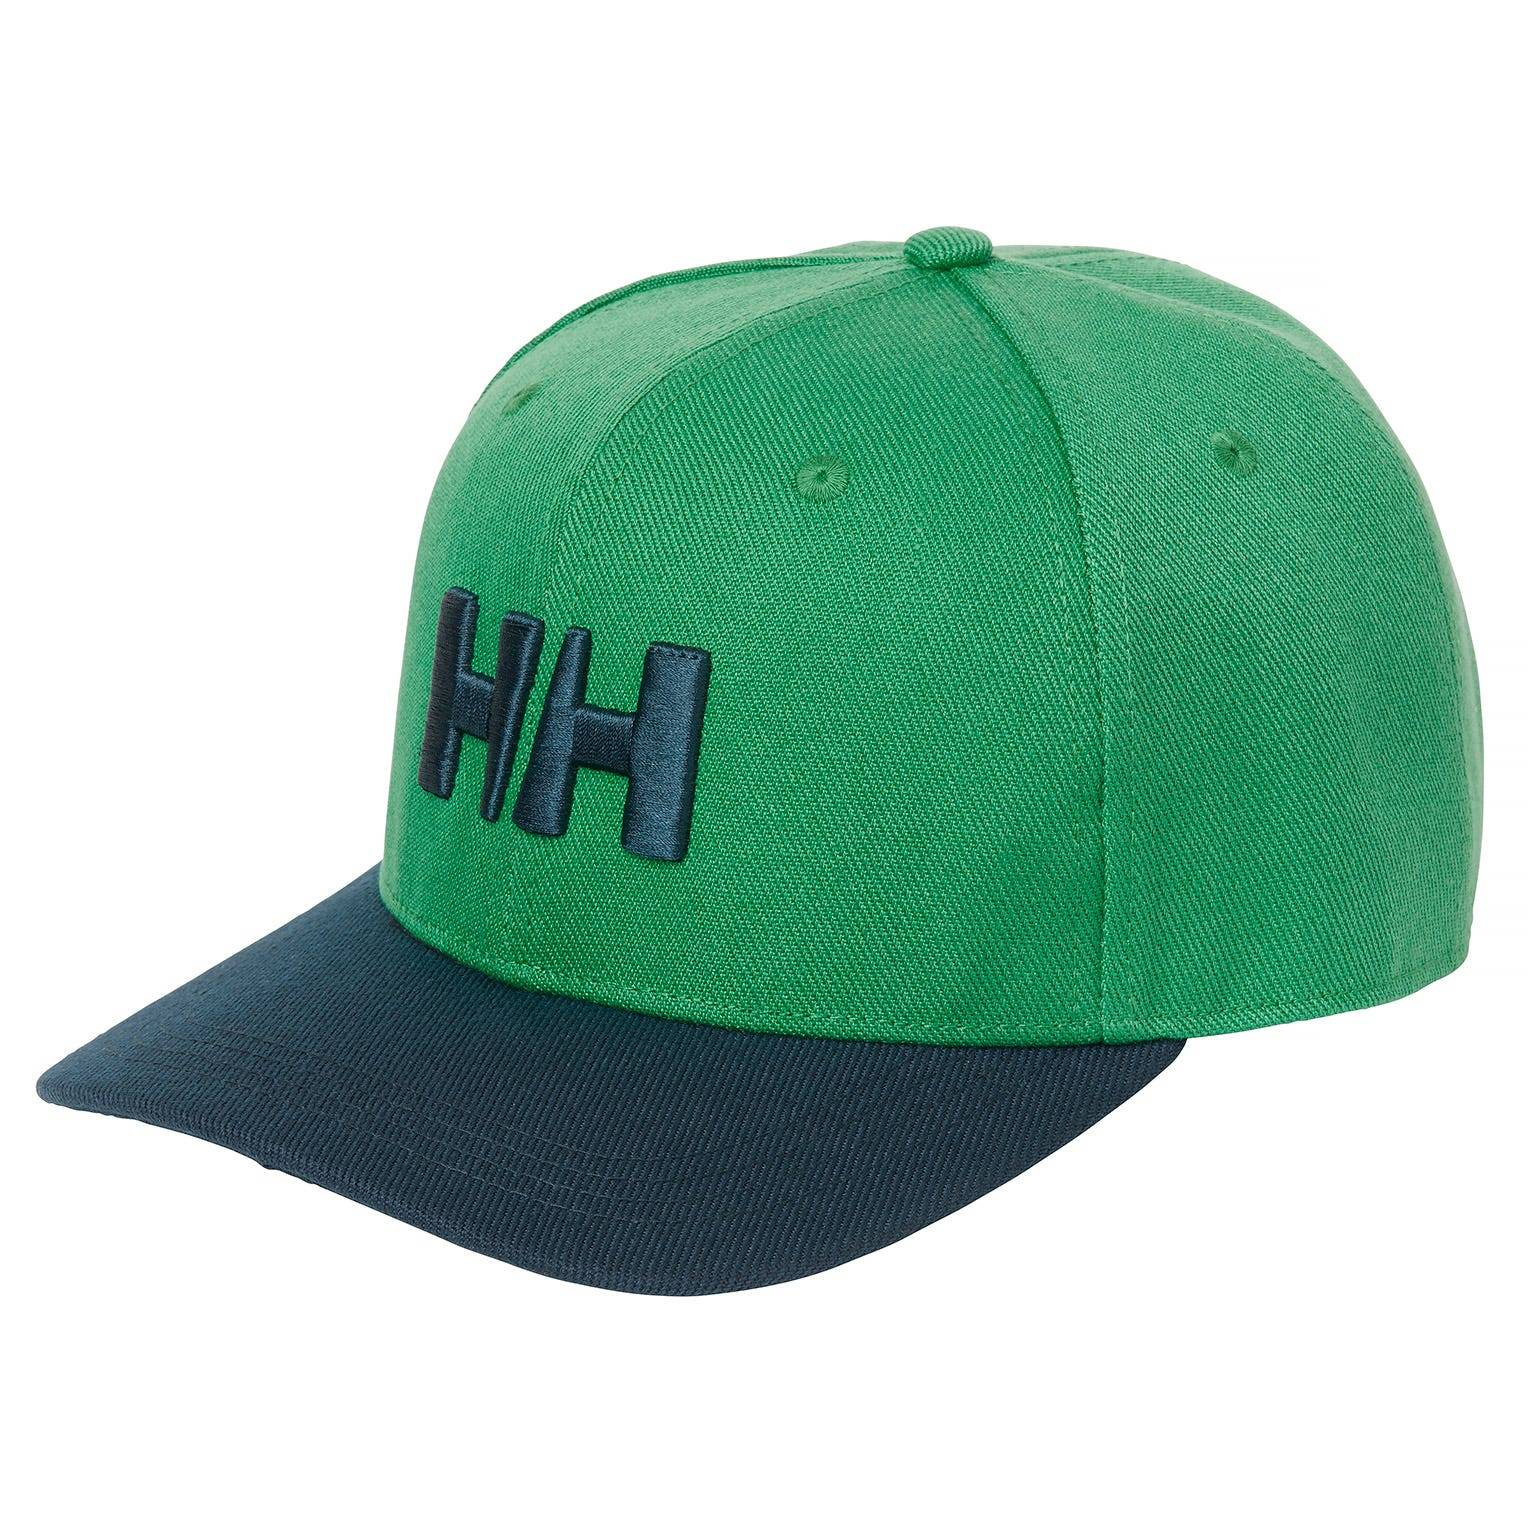 Helly Hansen Brand Cap Green STD